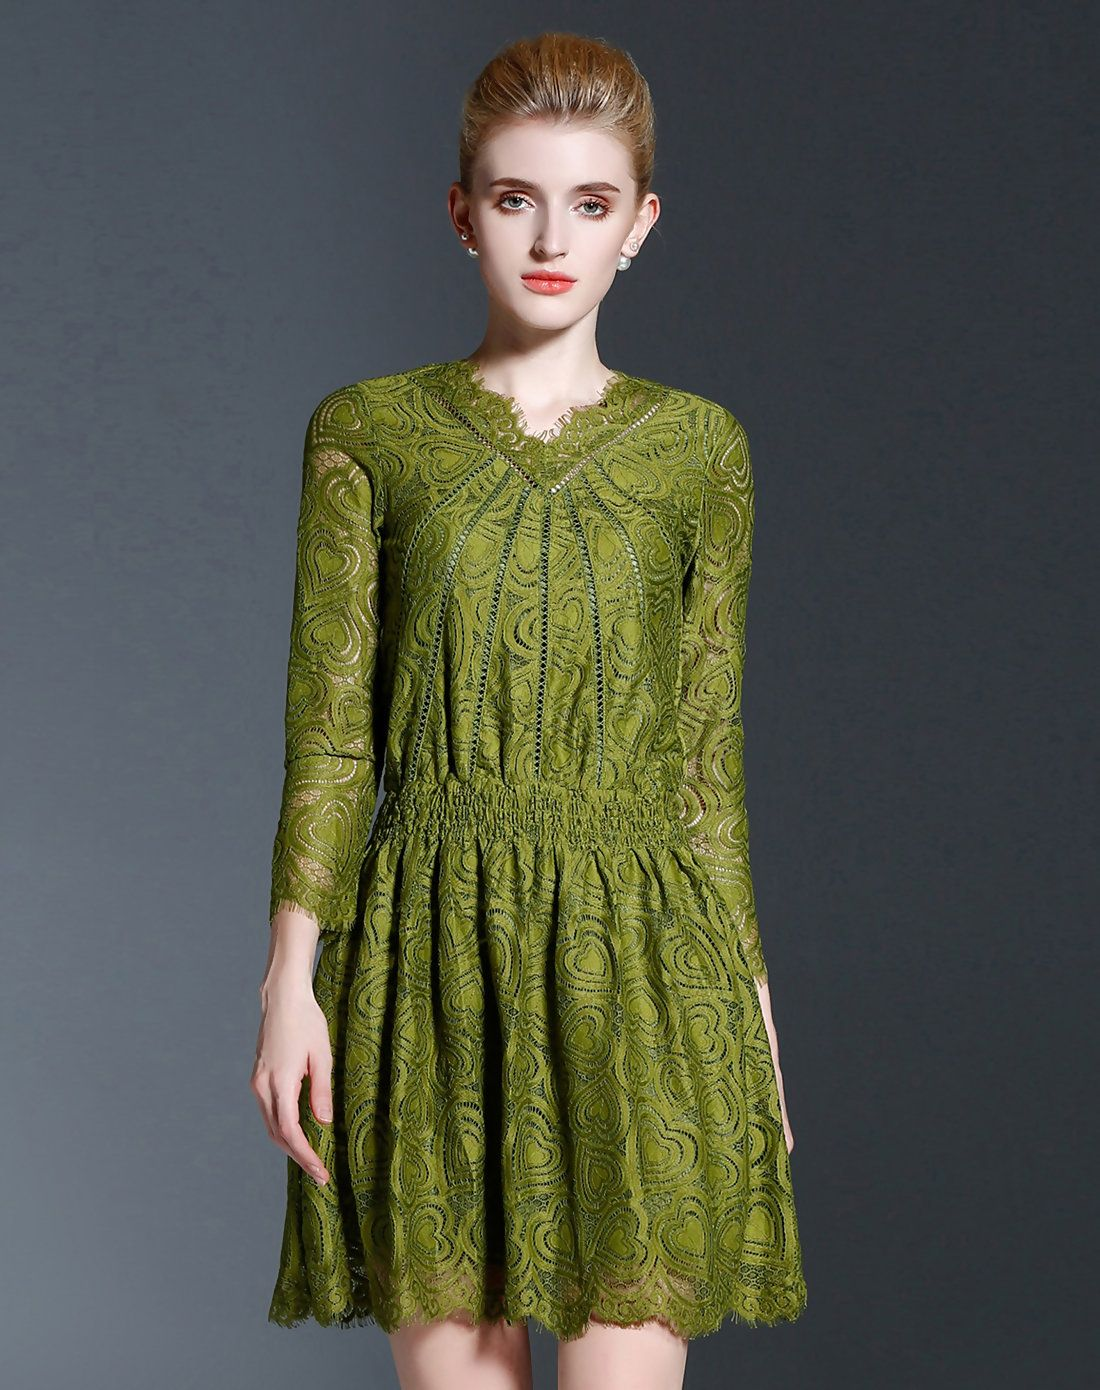 Adorewe oushang green sheer lace printed mini dress adorewe